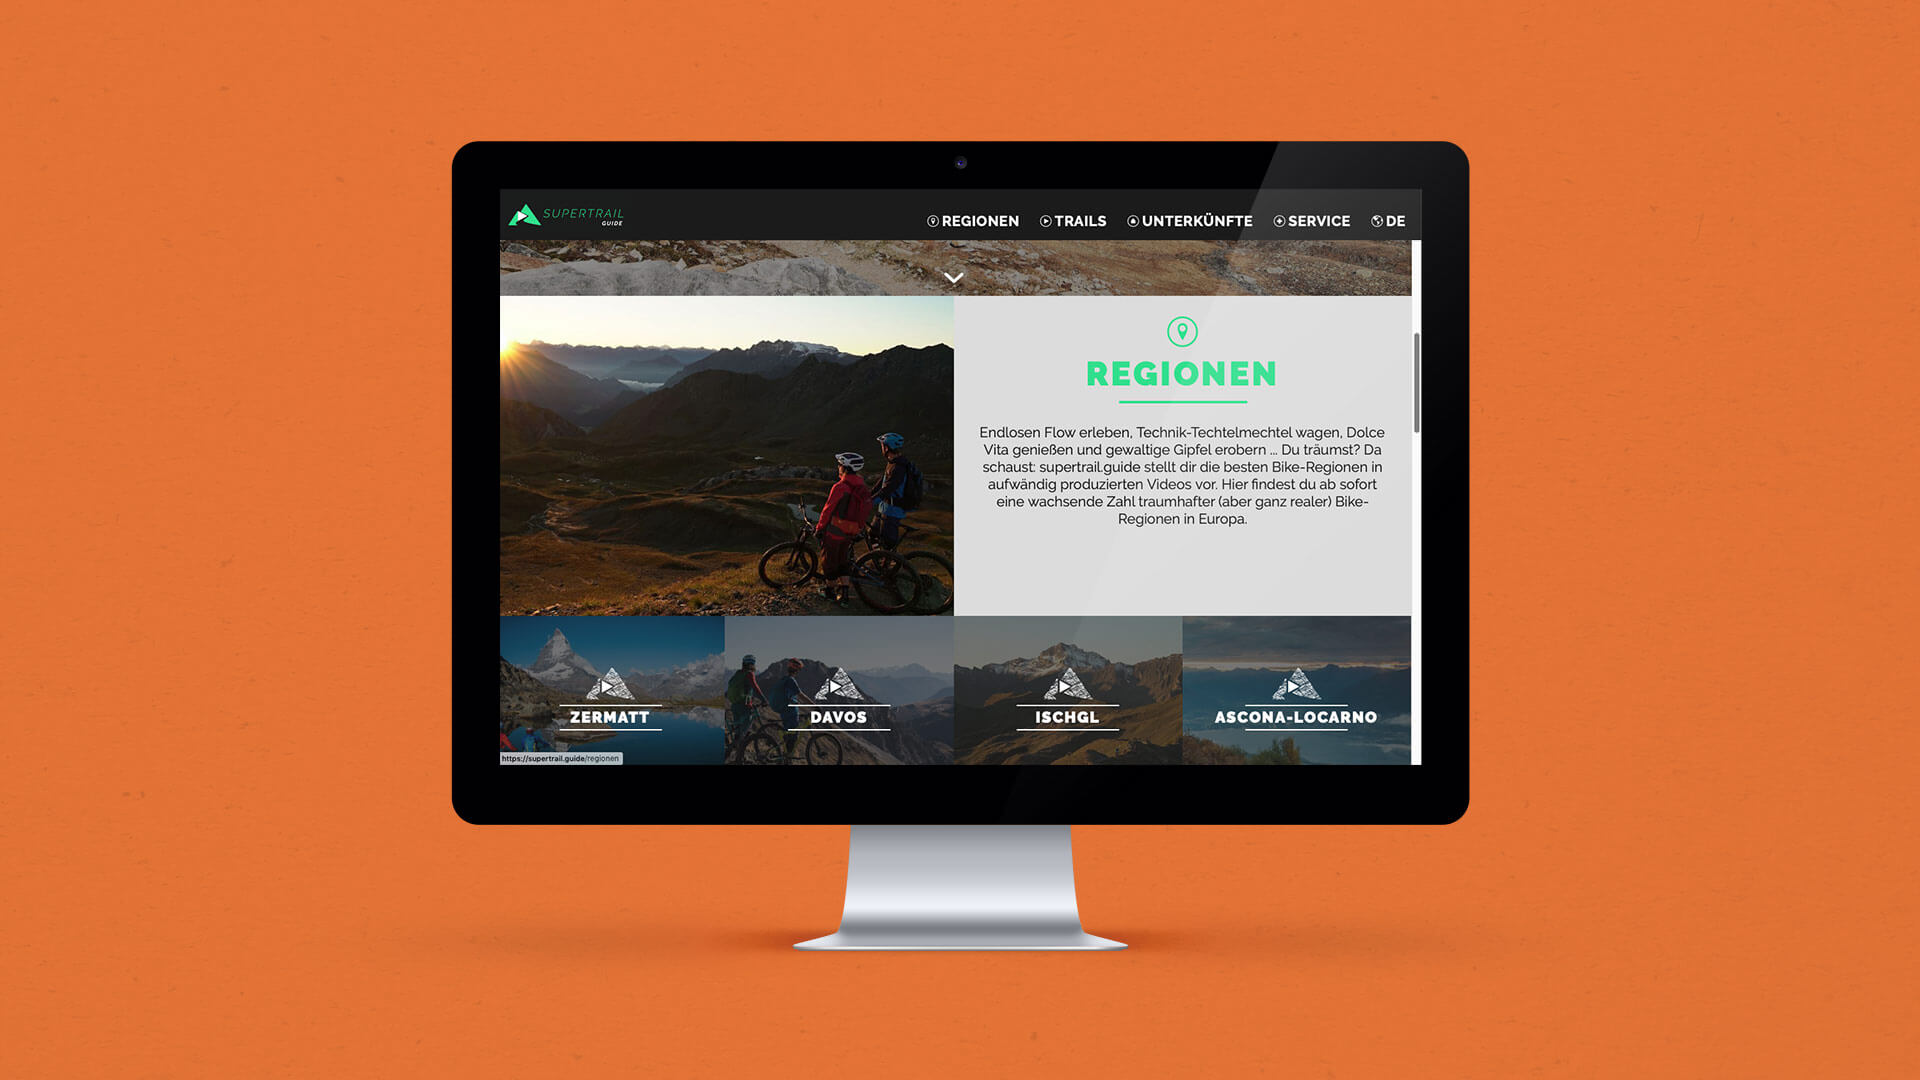 Mockup of the Landing Page of the Supertrail Guide Website